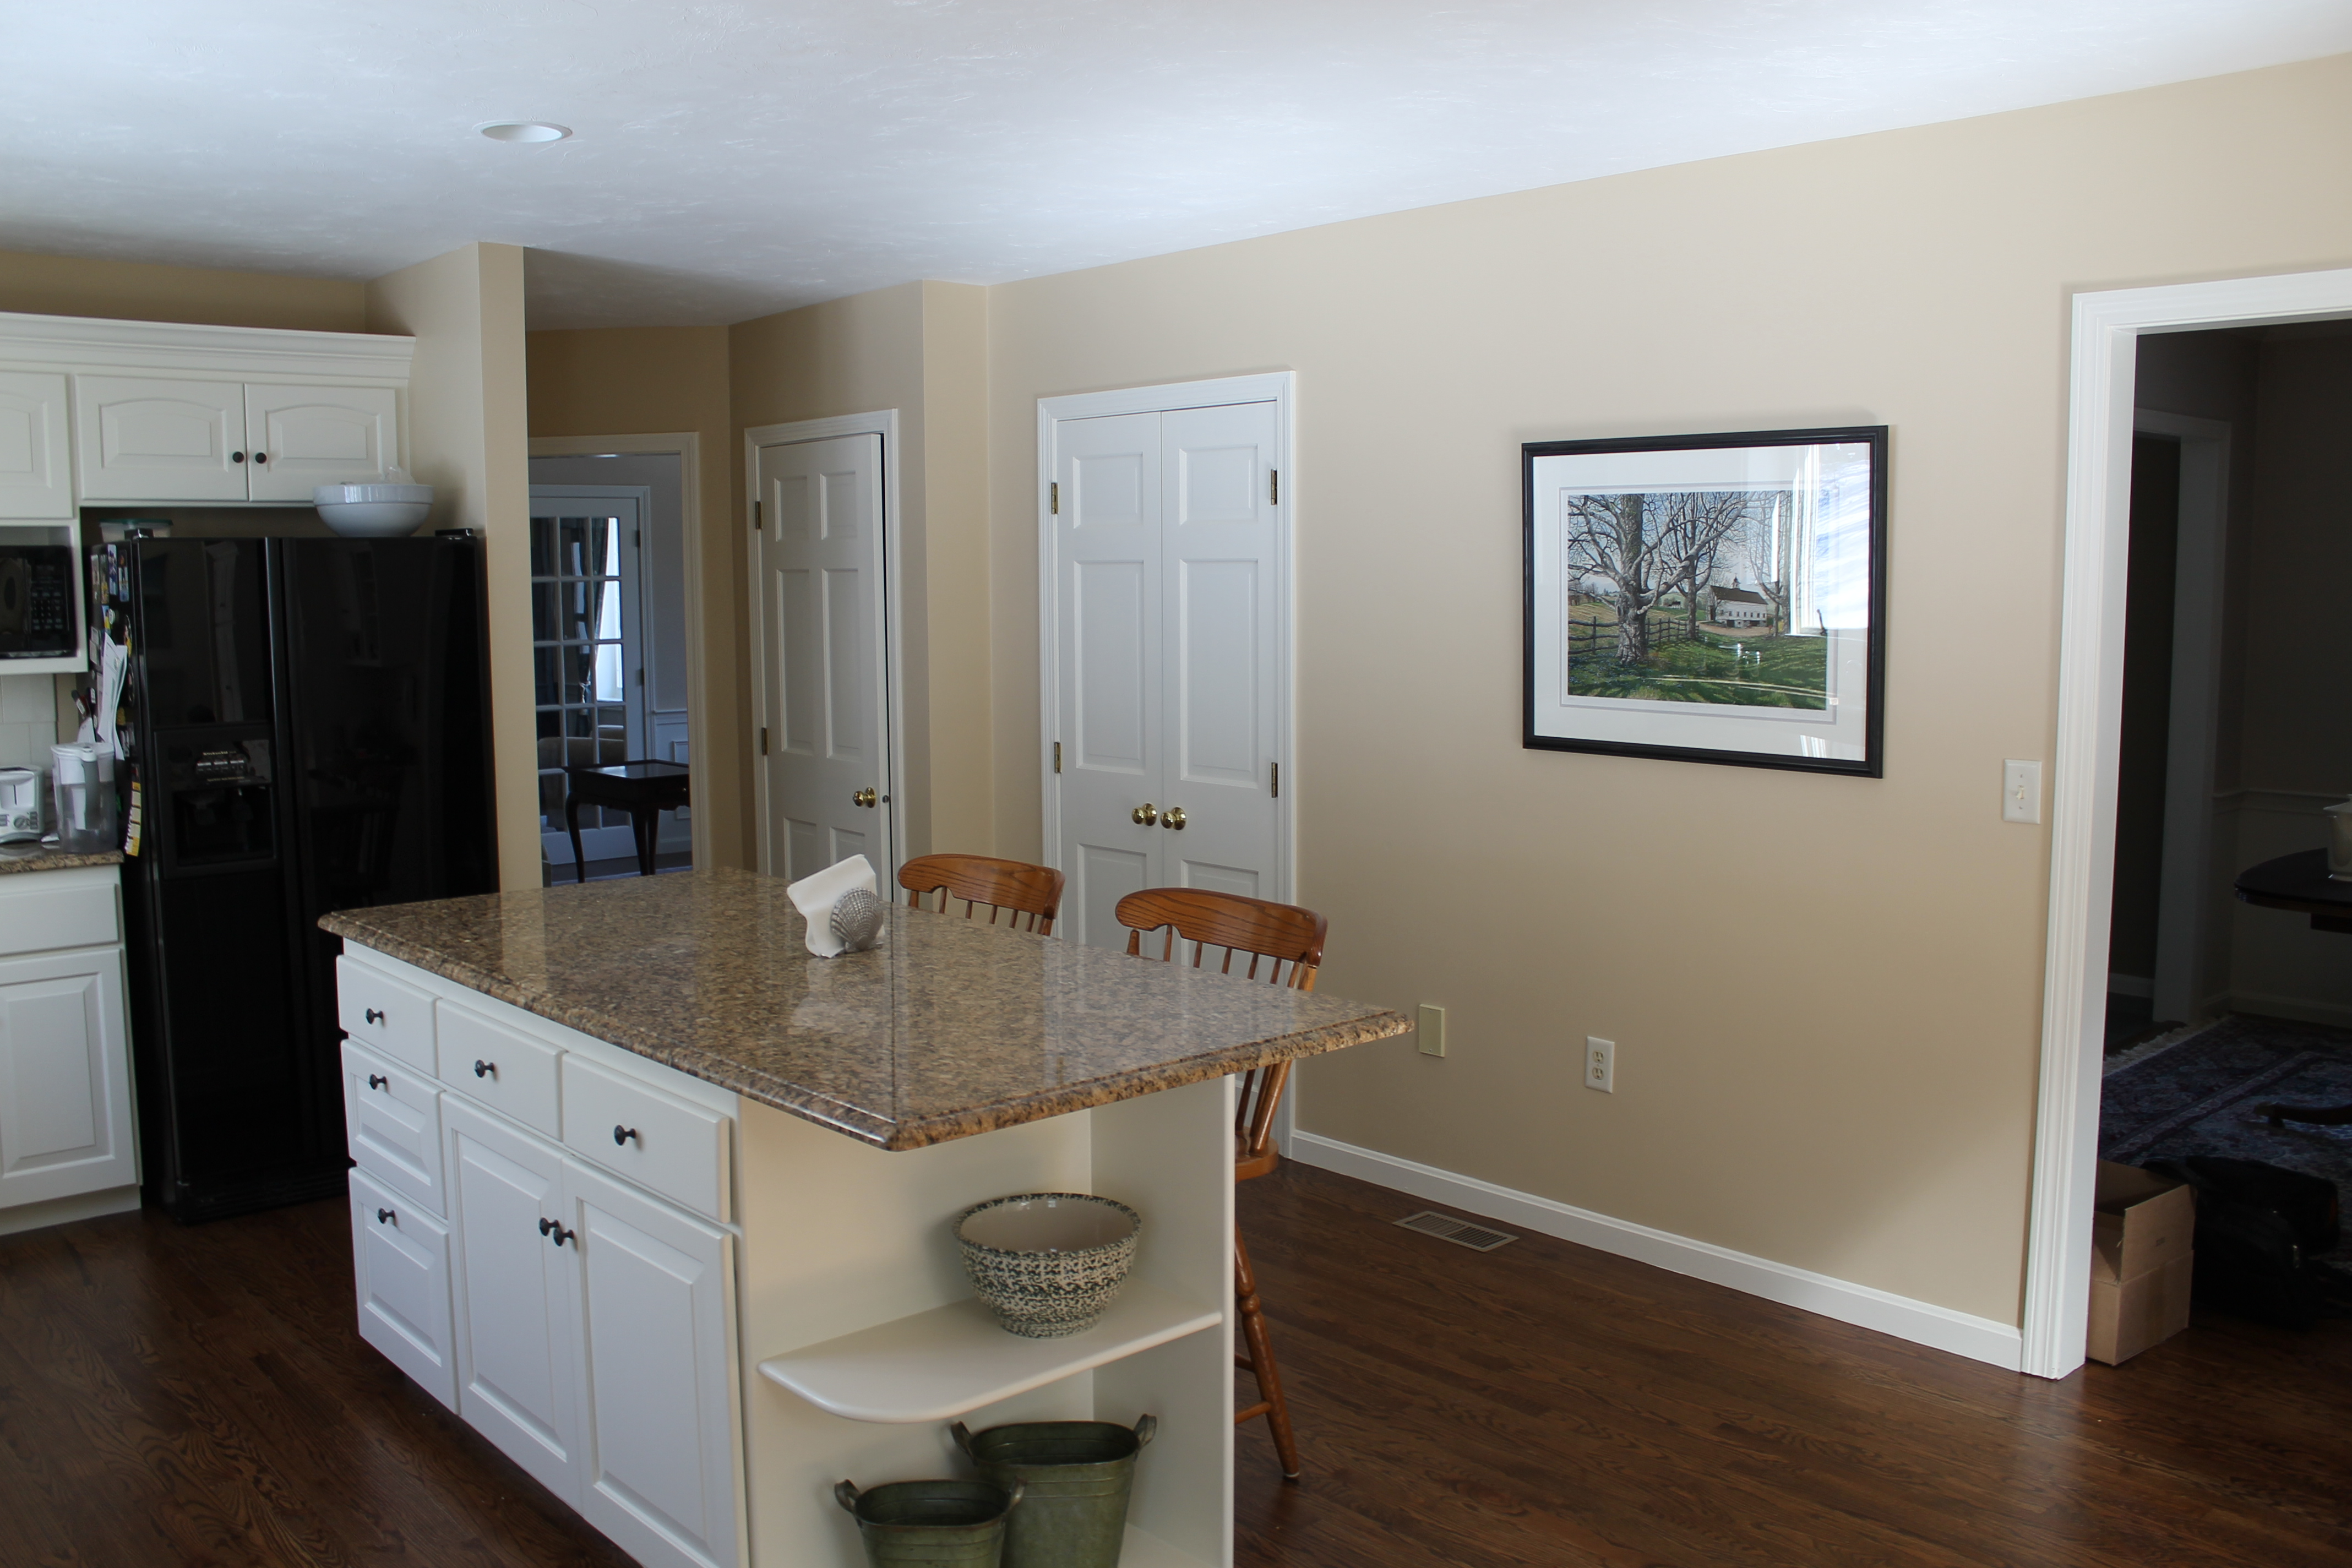 Interior Painting, Wall Paper Removal, Hubley Painting, Kitchen Cabinet Painting